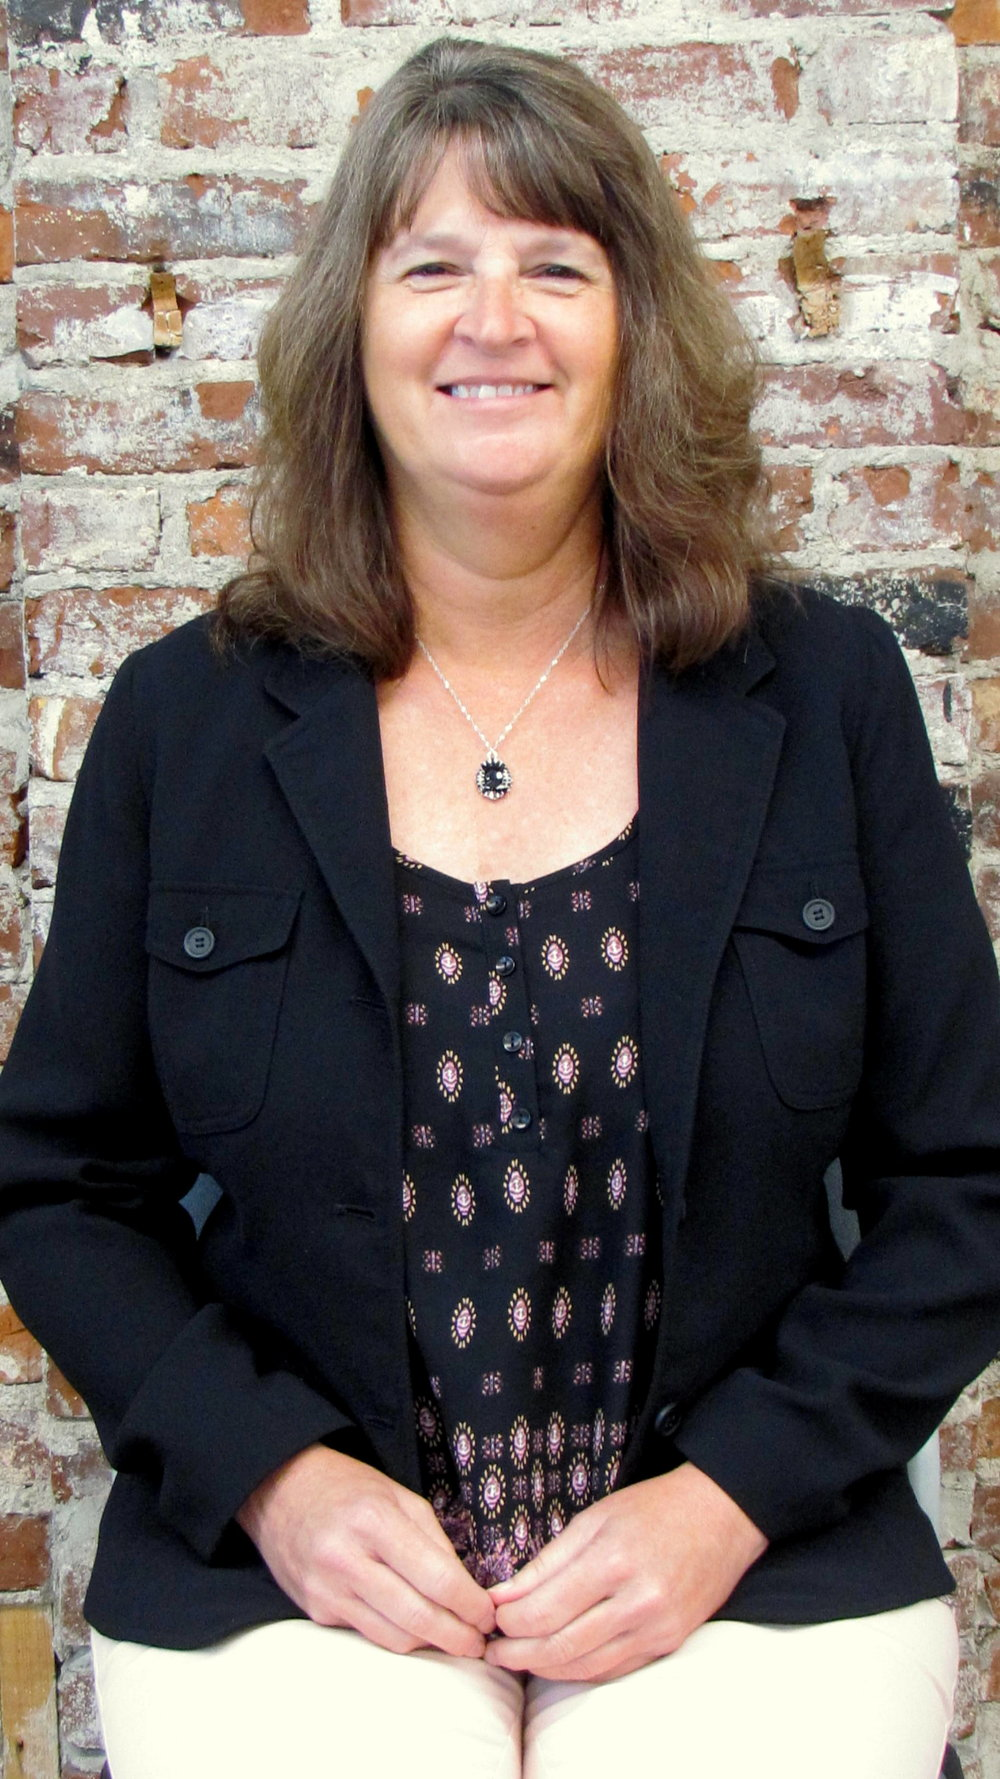 Robin Sterling - Administrative Coordinator304-427-7271 ext. 103Email Robin